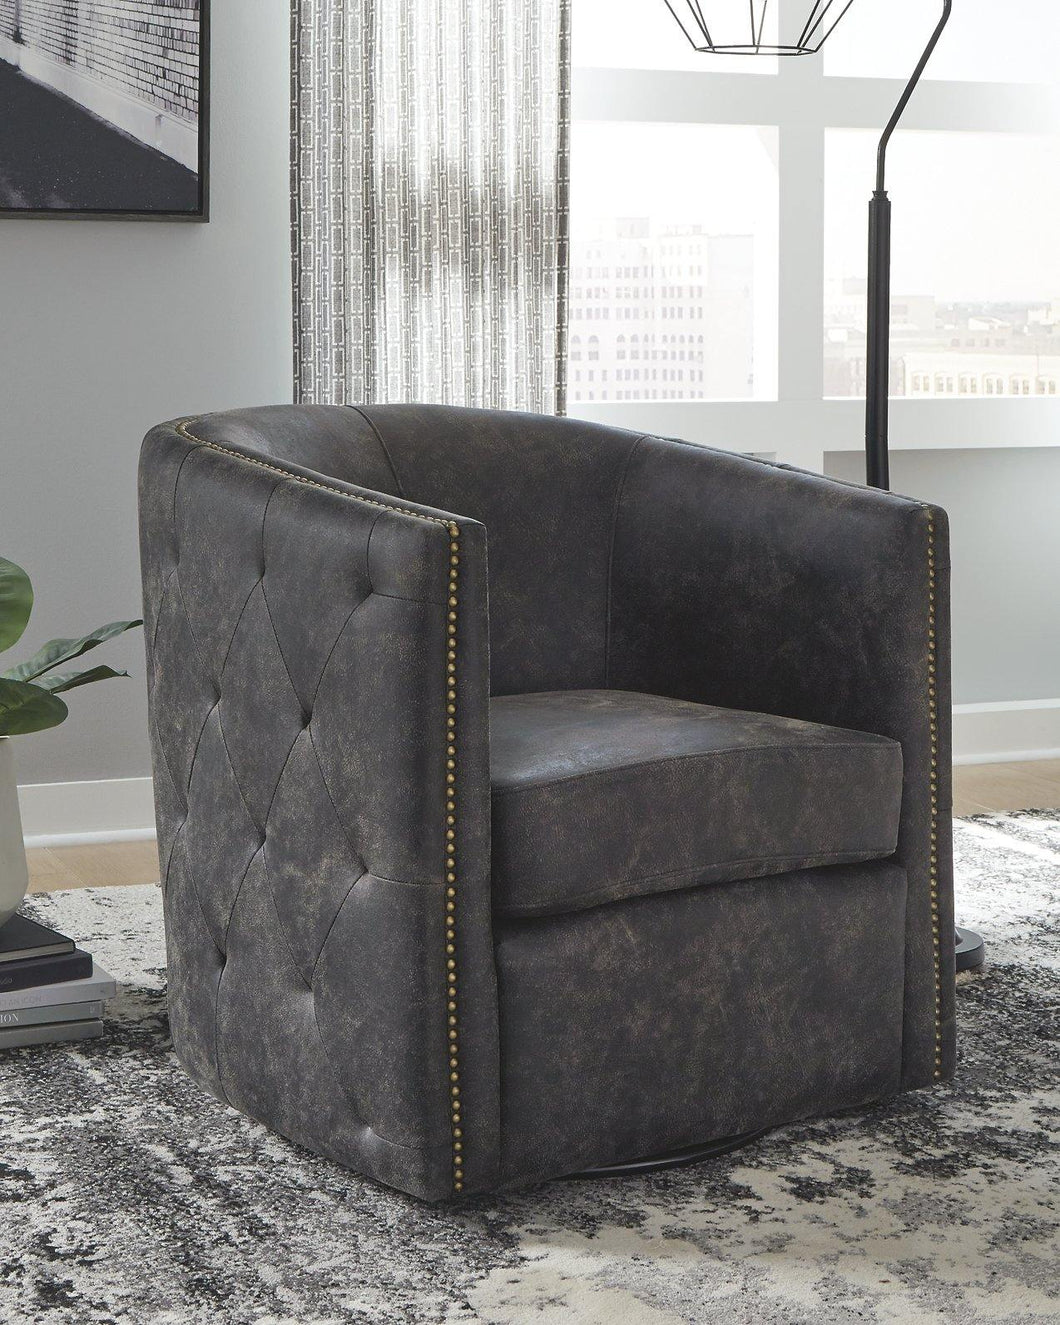 Brentlow Accent Chair A3000202 By Ashley Furniture from sofafair